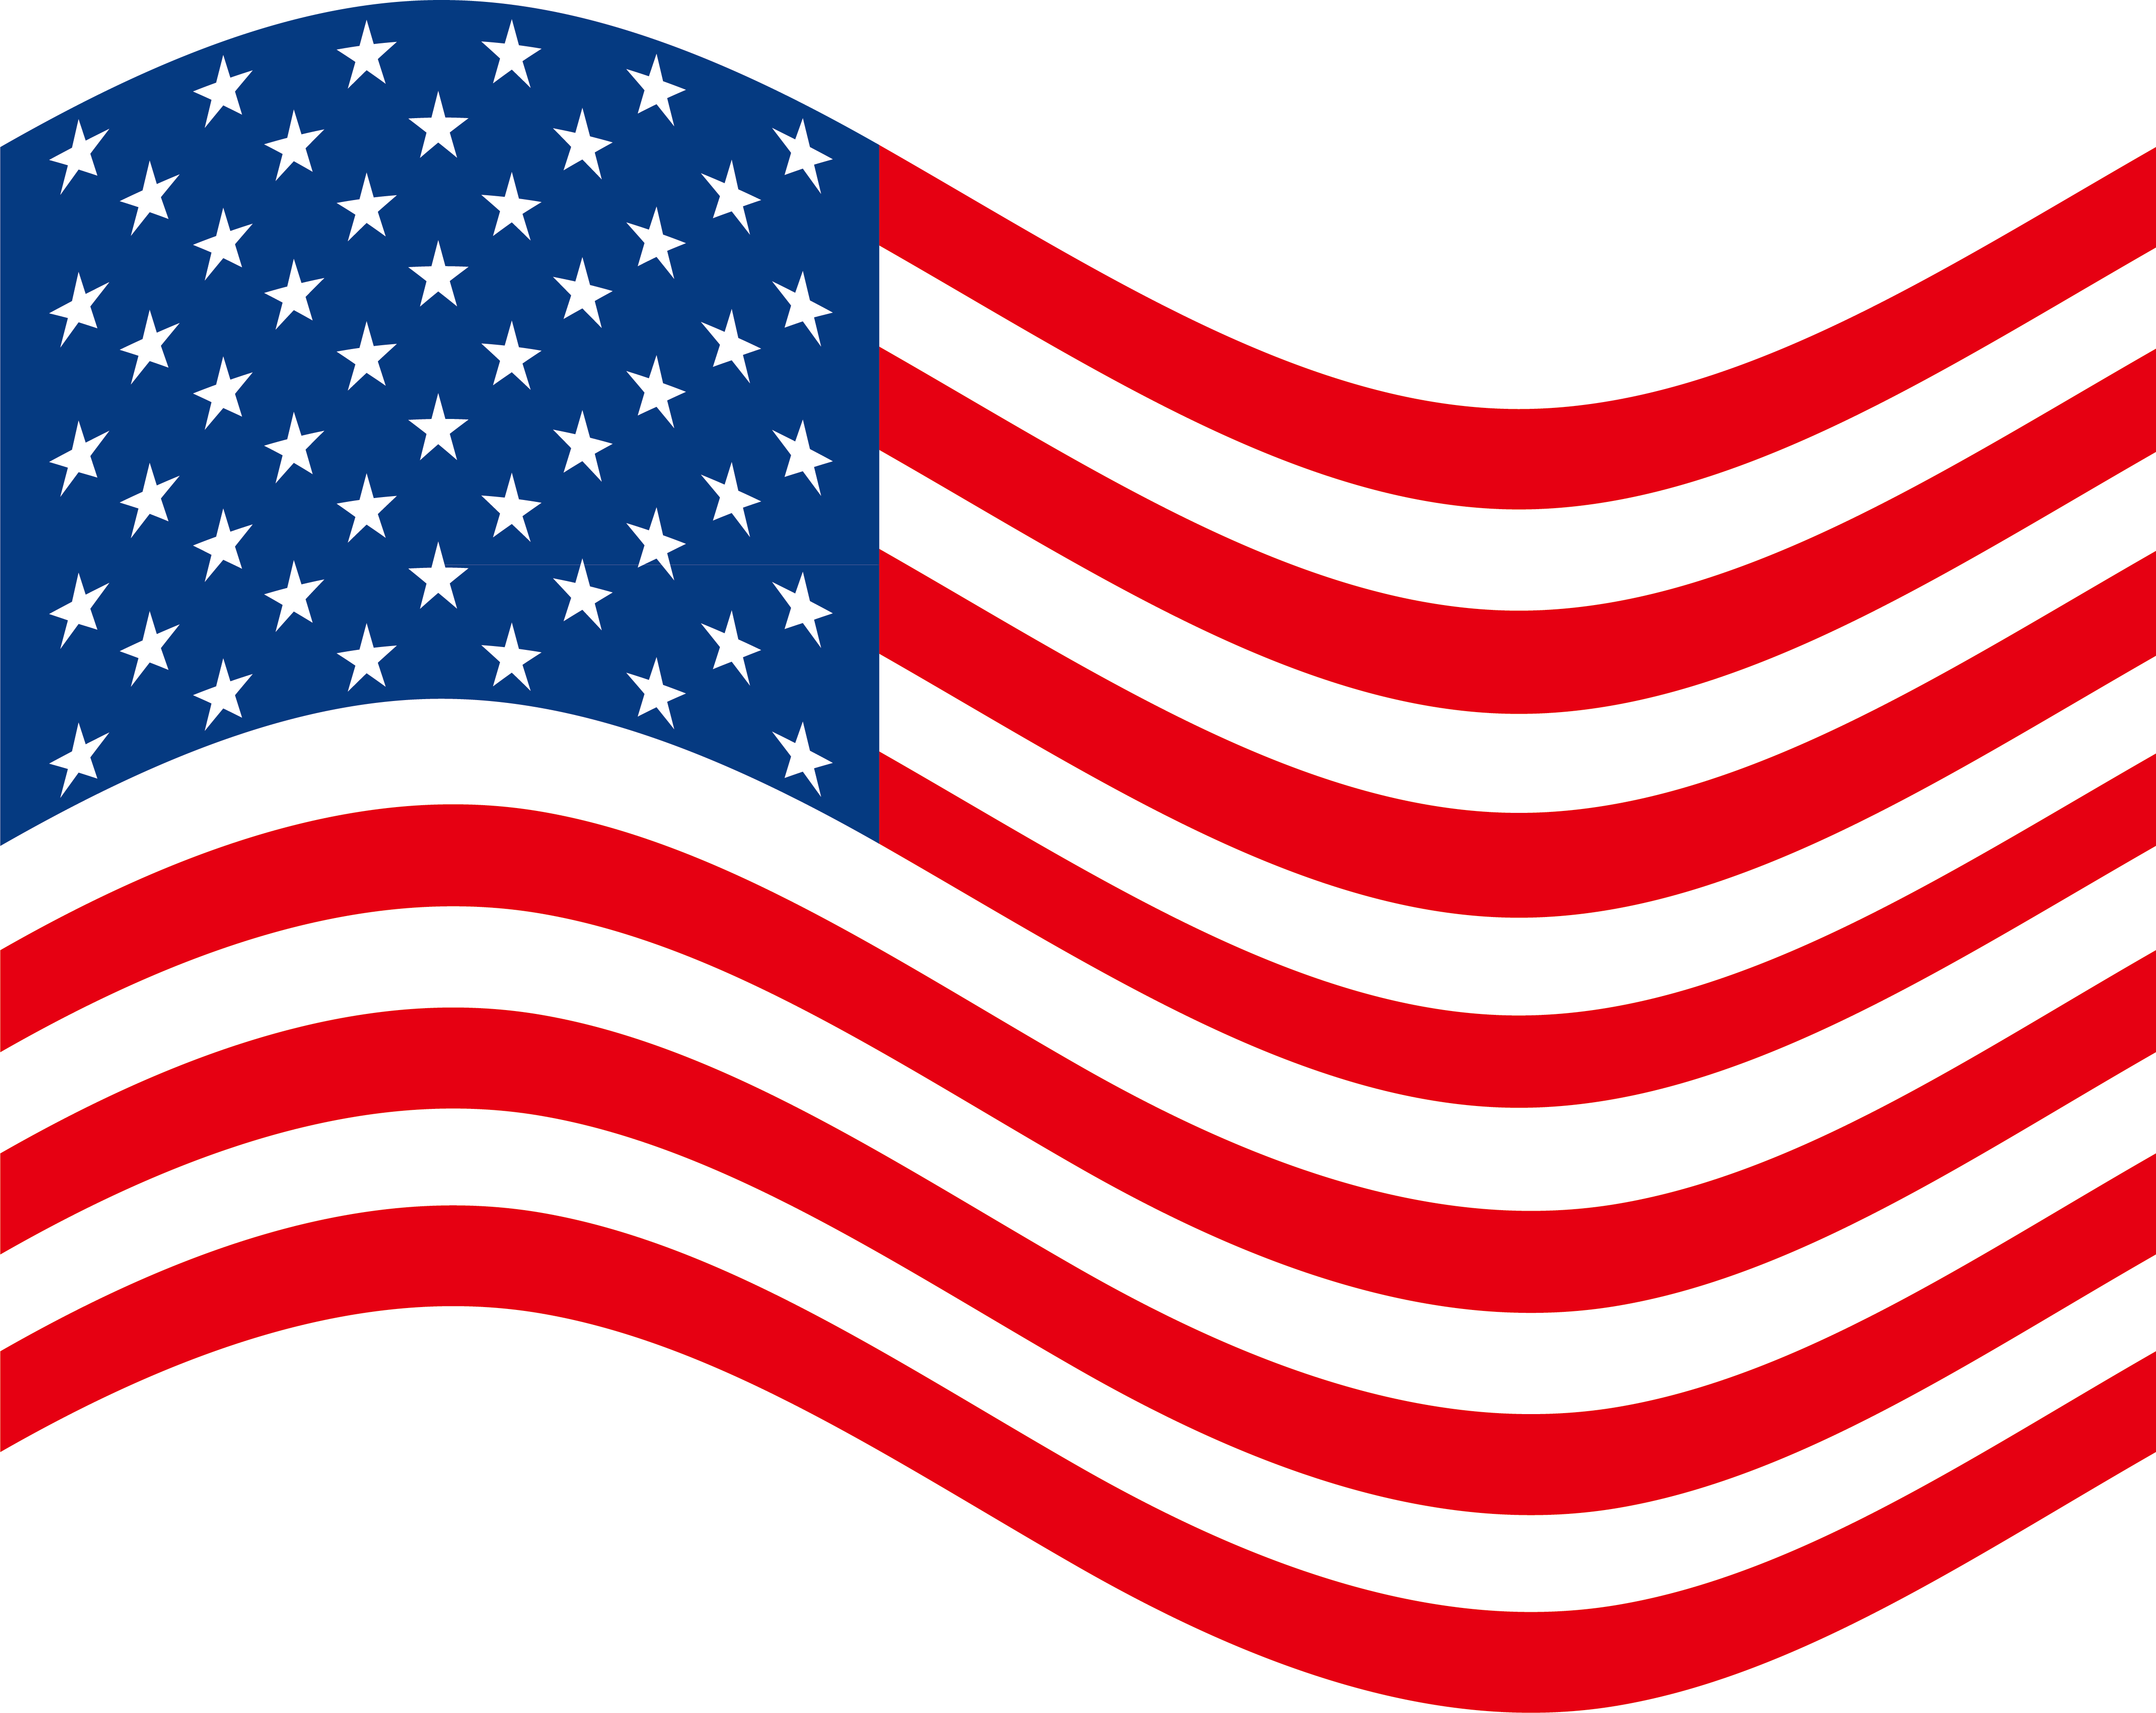 American flag clipart pictures banner free download Flag of the United States Clip art - American flag design png ... banner free download